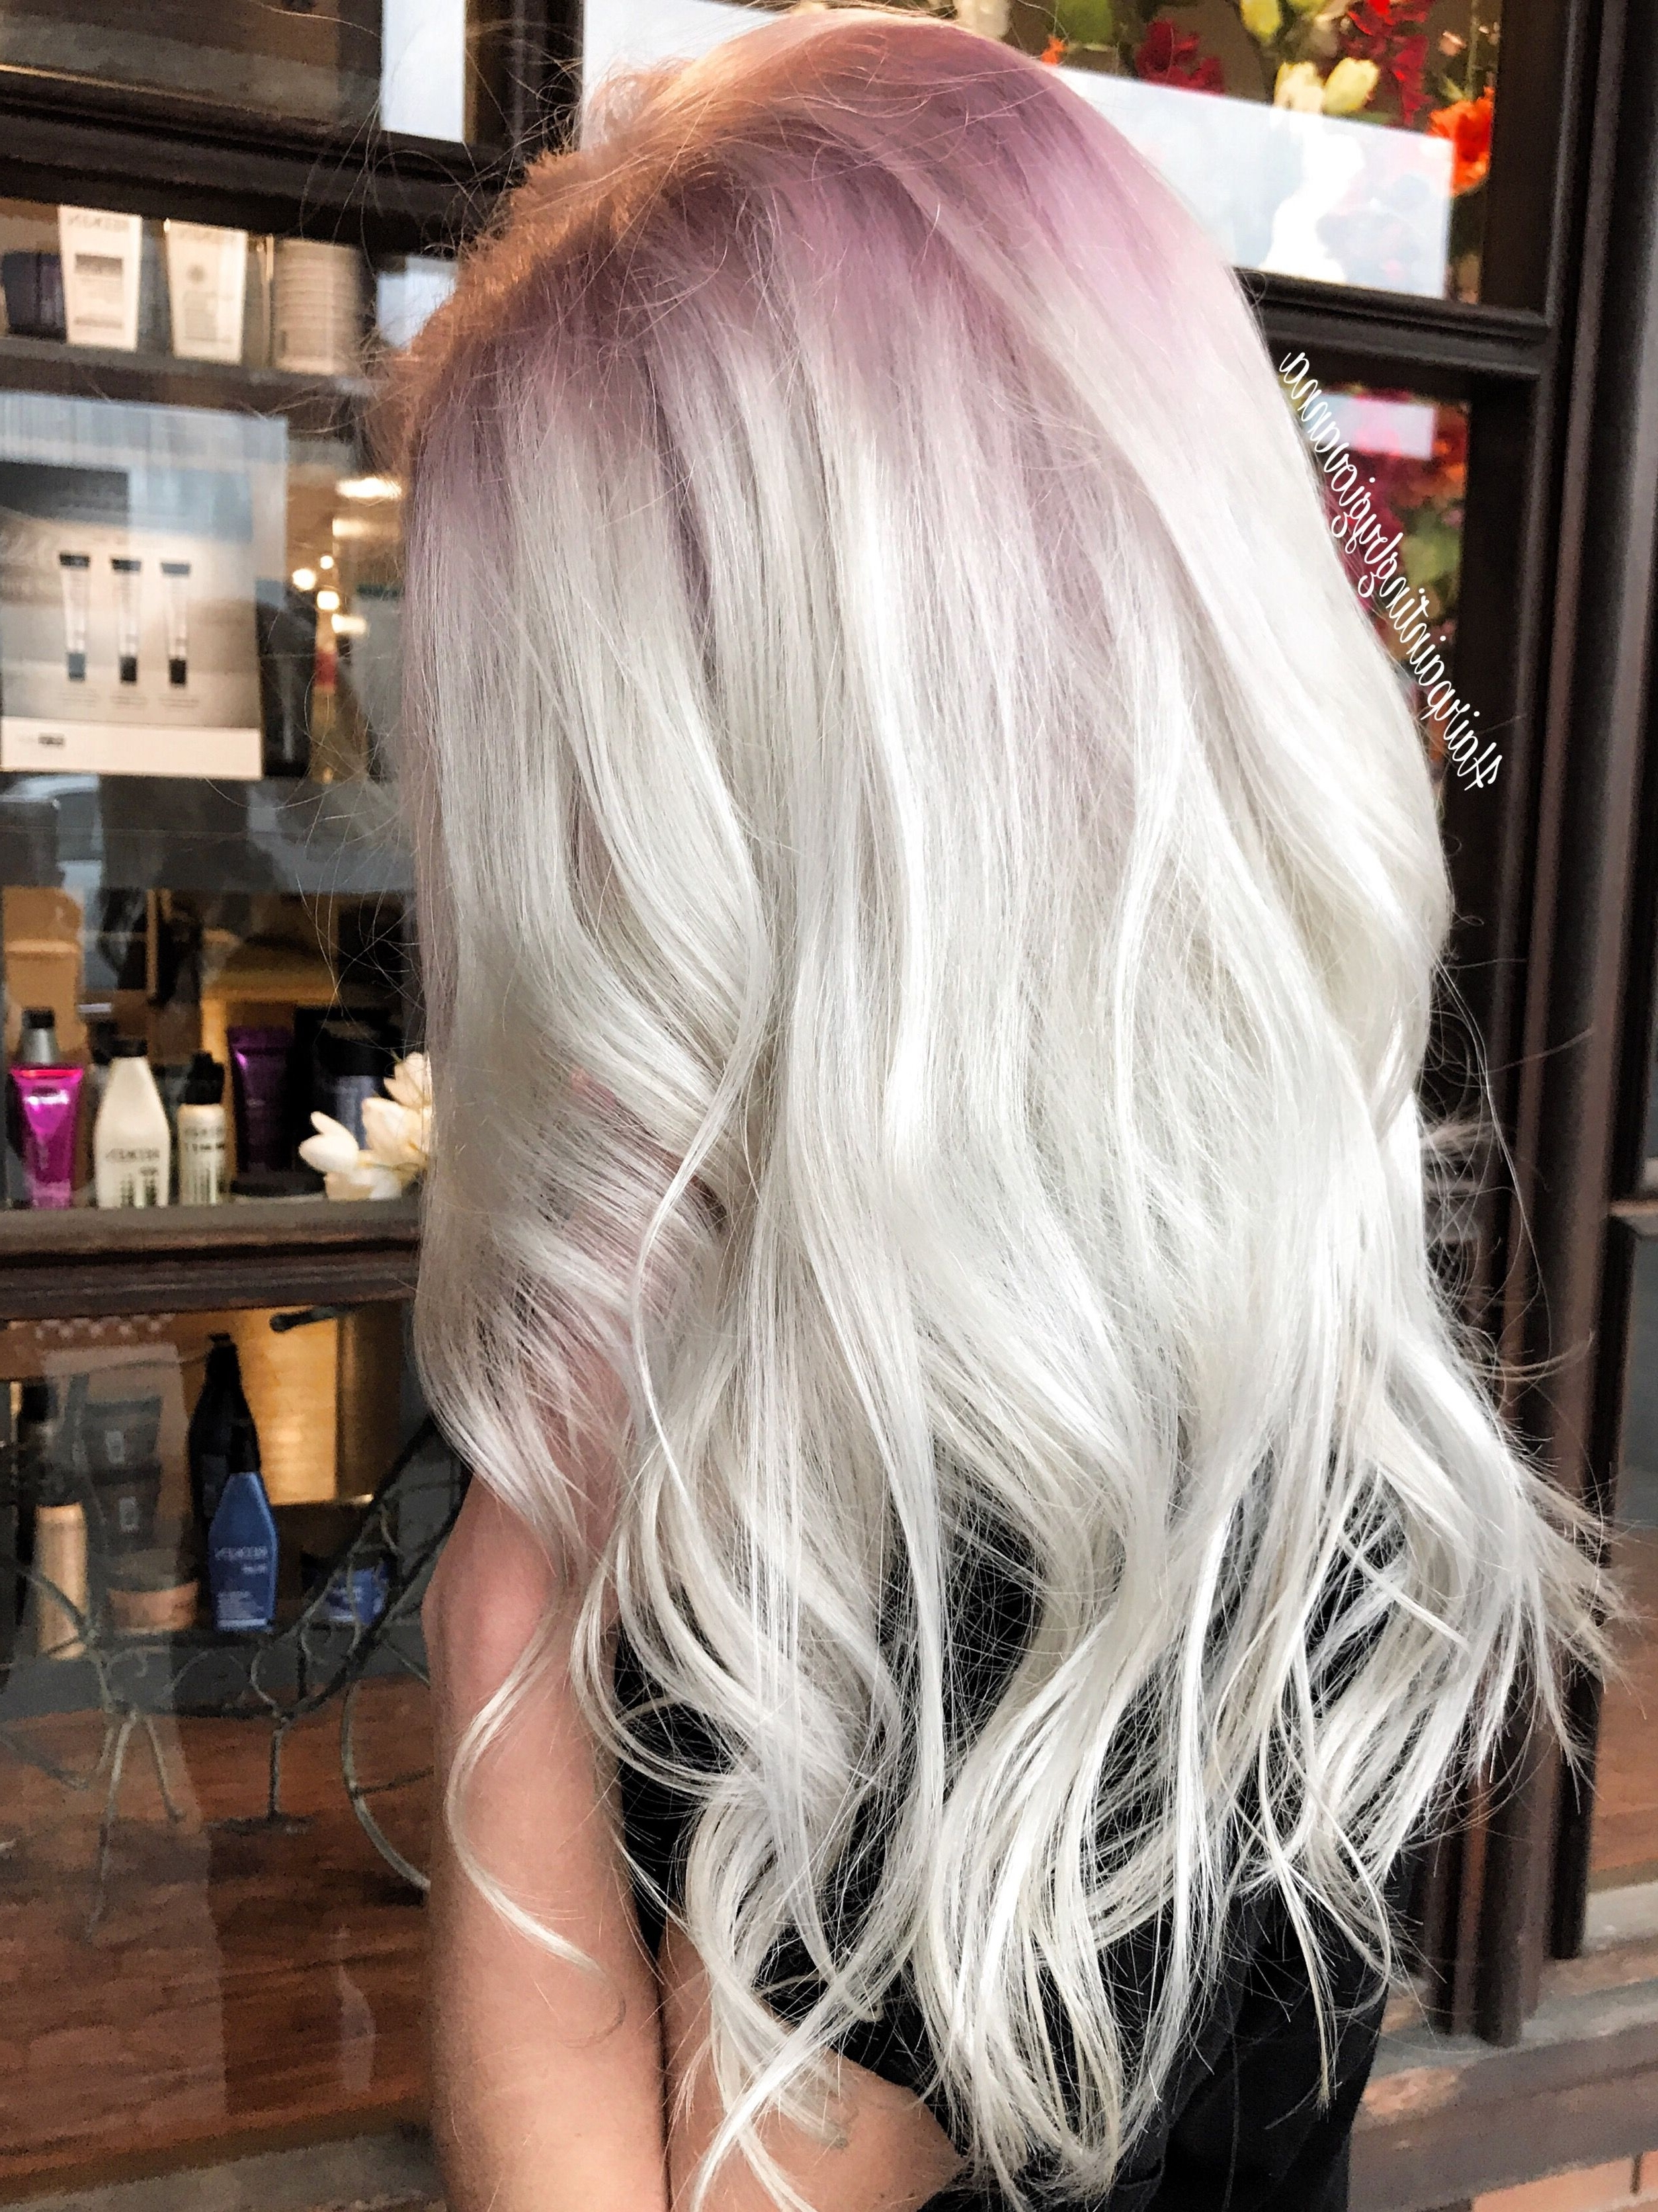 Widely Used Golden And Platinum Blonde Hairstyles Pertaining To Stunning Platinum Hair With A Subtle Rose Gold Shadow Root Using All (View 19 of 20)